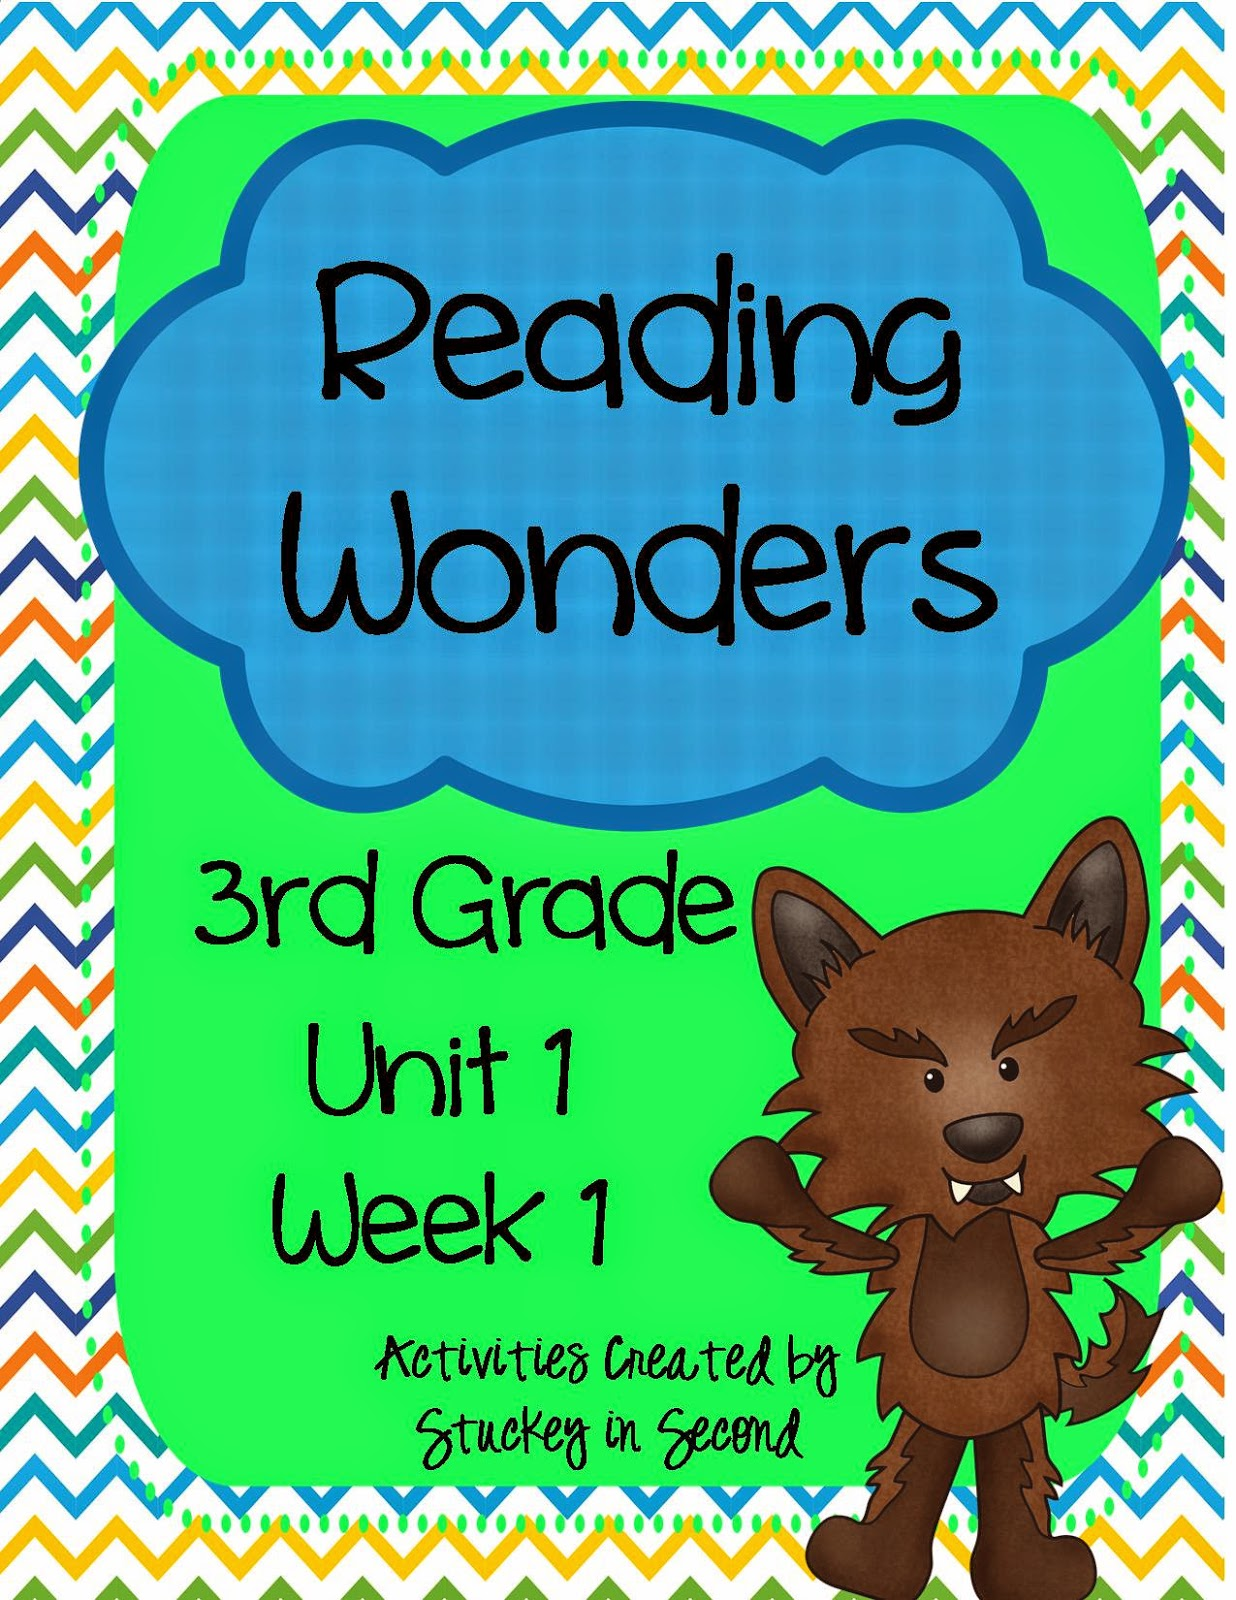 http://www.teacherspayteachers.com/Product/Reading-Wonders-GRADE-3-CENTERS-Unit-1-Week-1-1108169